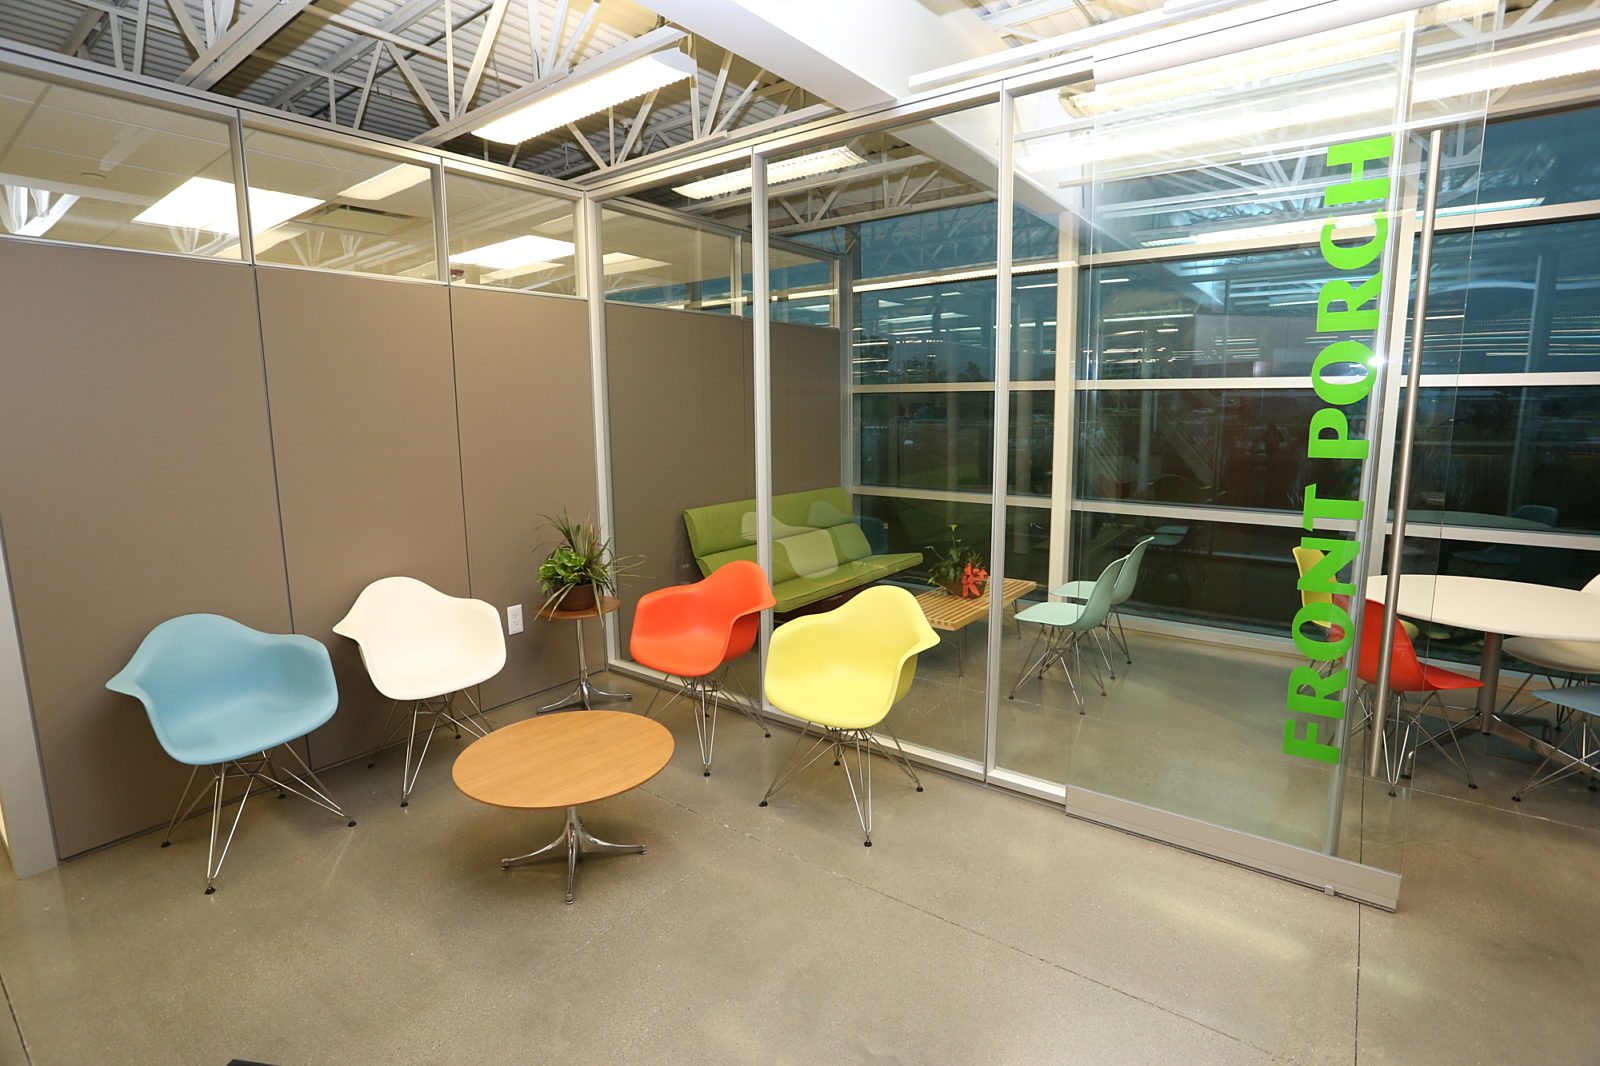 Purfoods, Pigott, Herman Miller, Office Furniture, Corporate Design, Ankeny Iowa, Eames Molded Plastic Chair, DIRTT, Bright Office